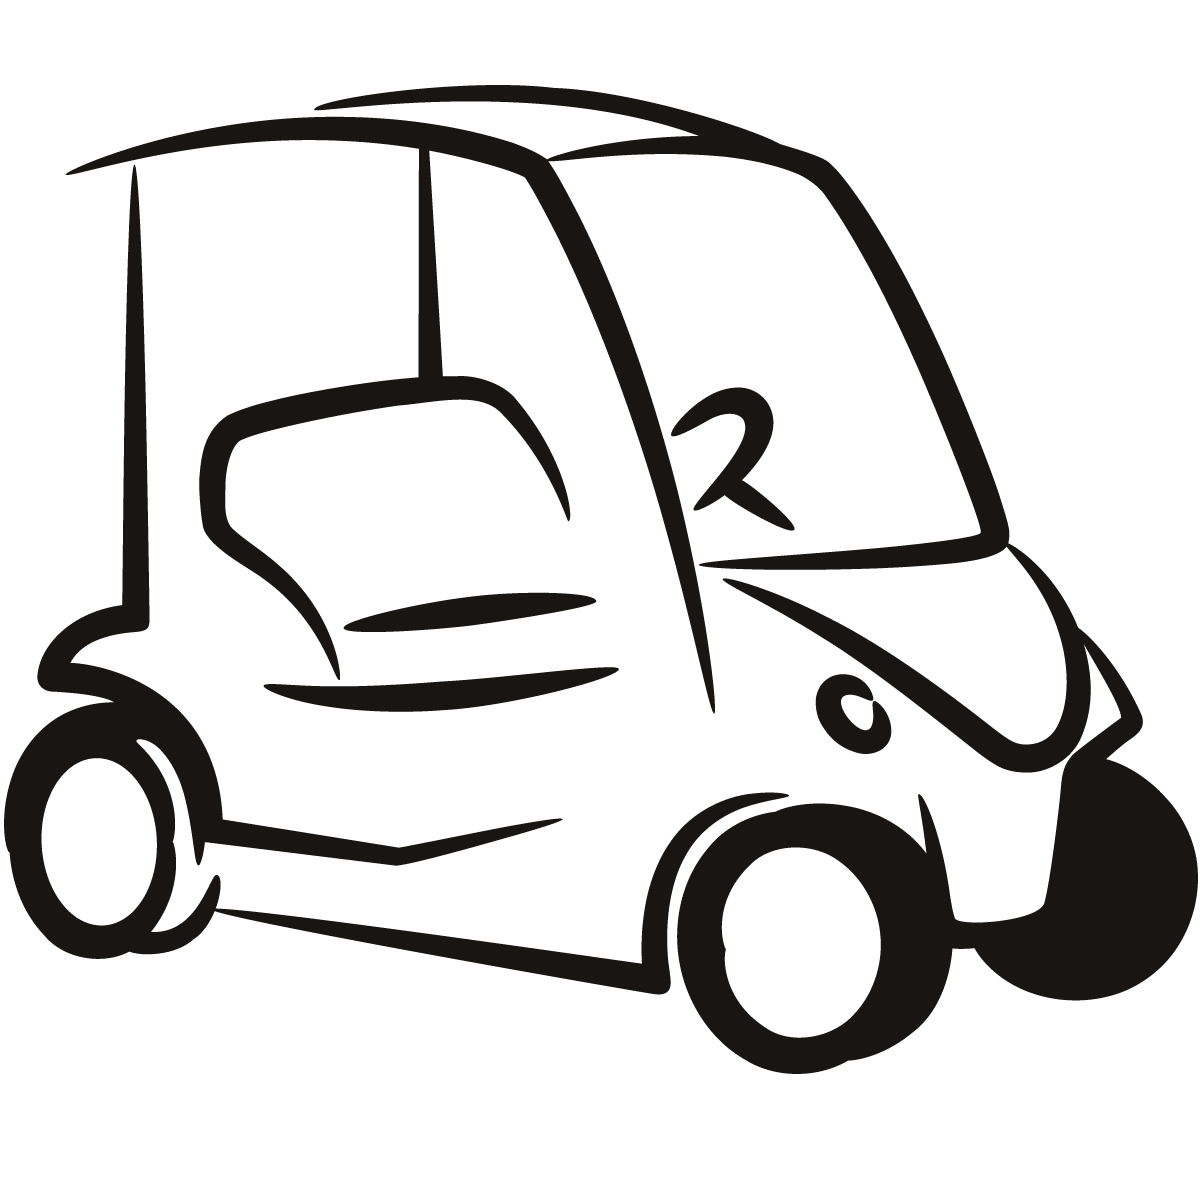 Golf cart clipart free jpg royalty free stock Free Golf Cart Clipart, Download Free Clip Art, Free Clip Art on ... jpg royalty free stock